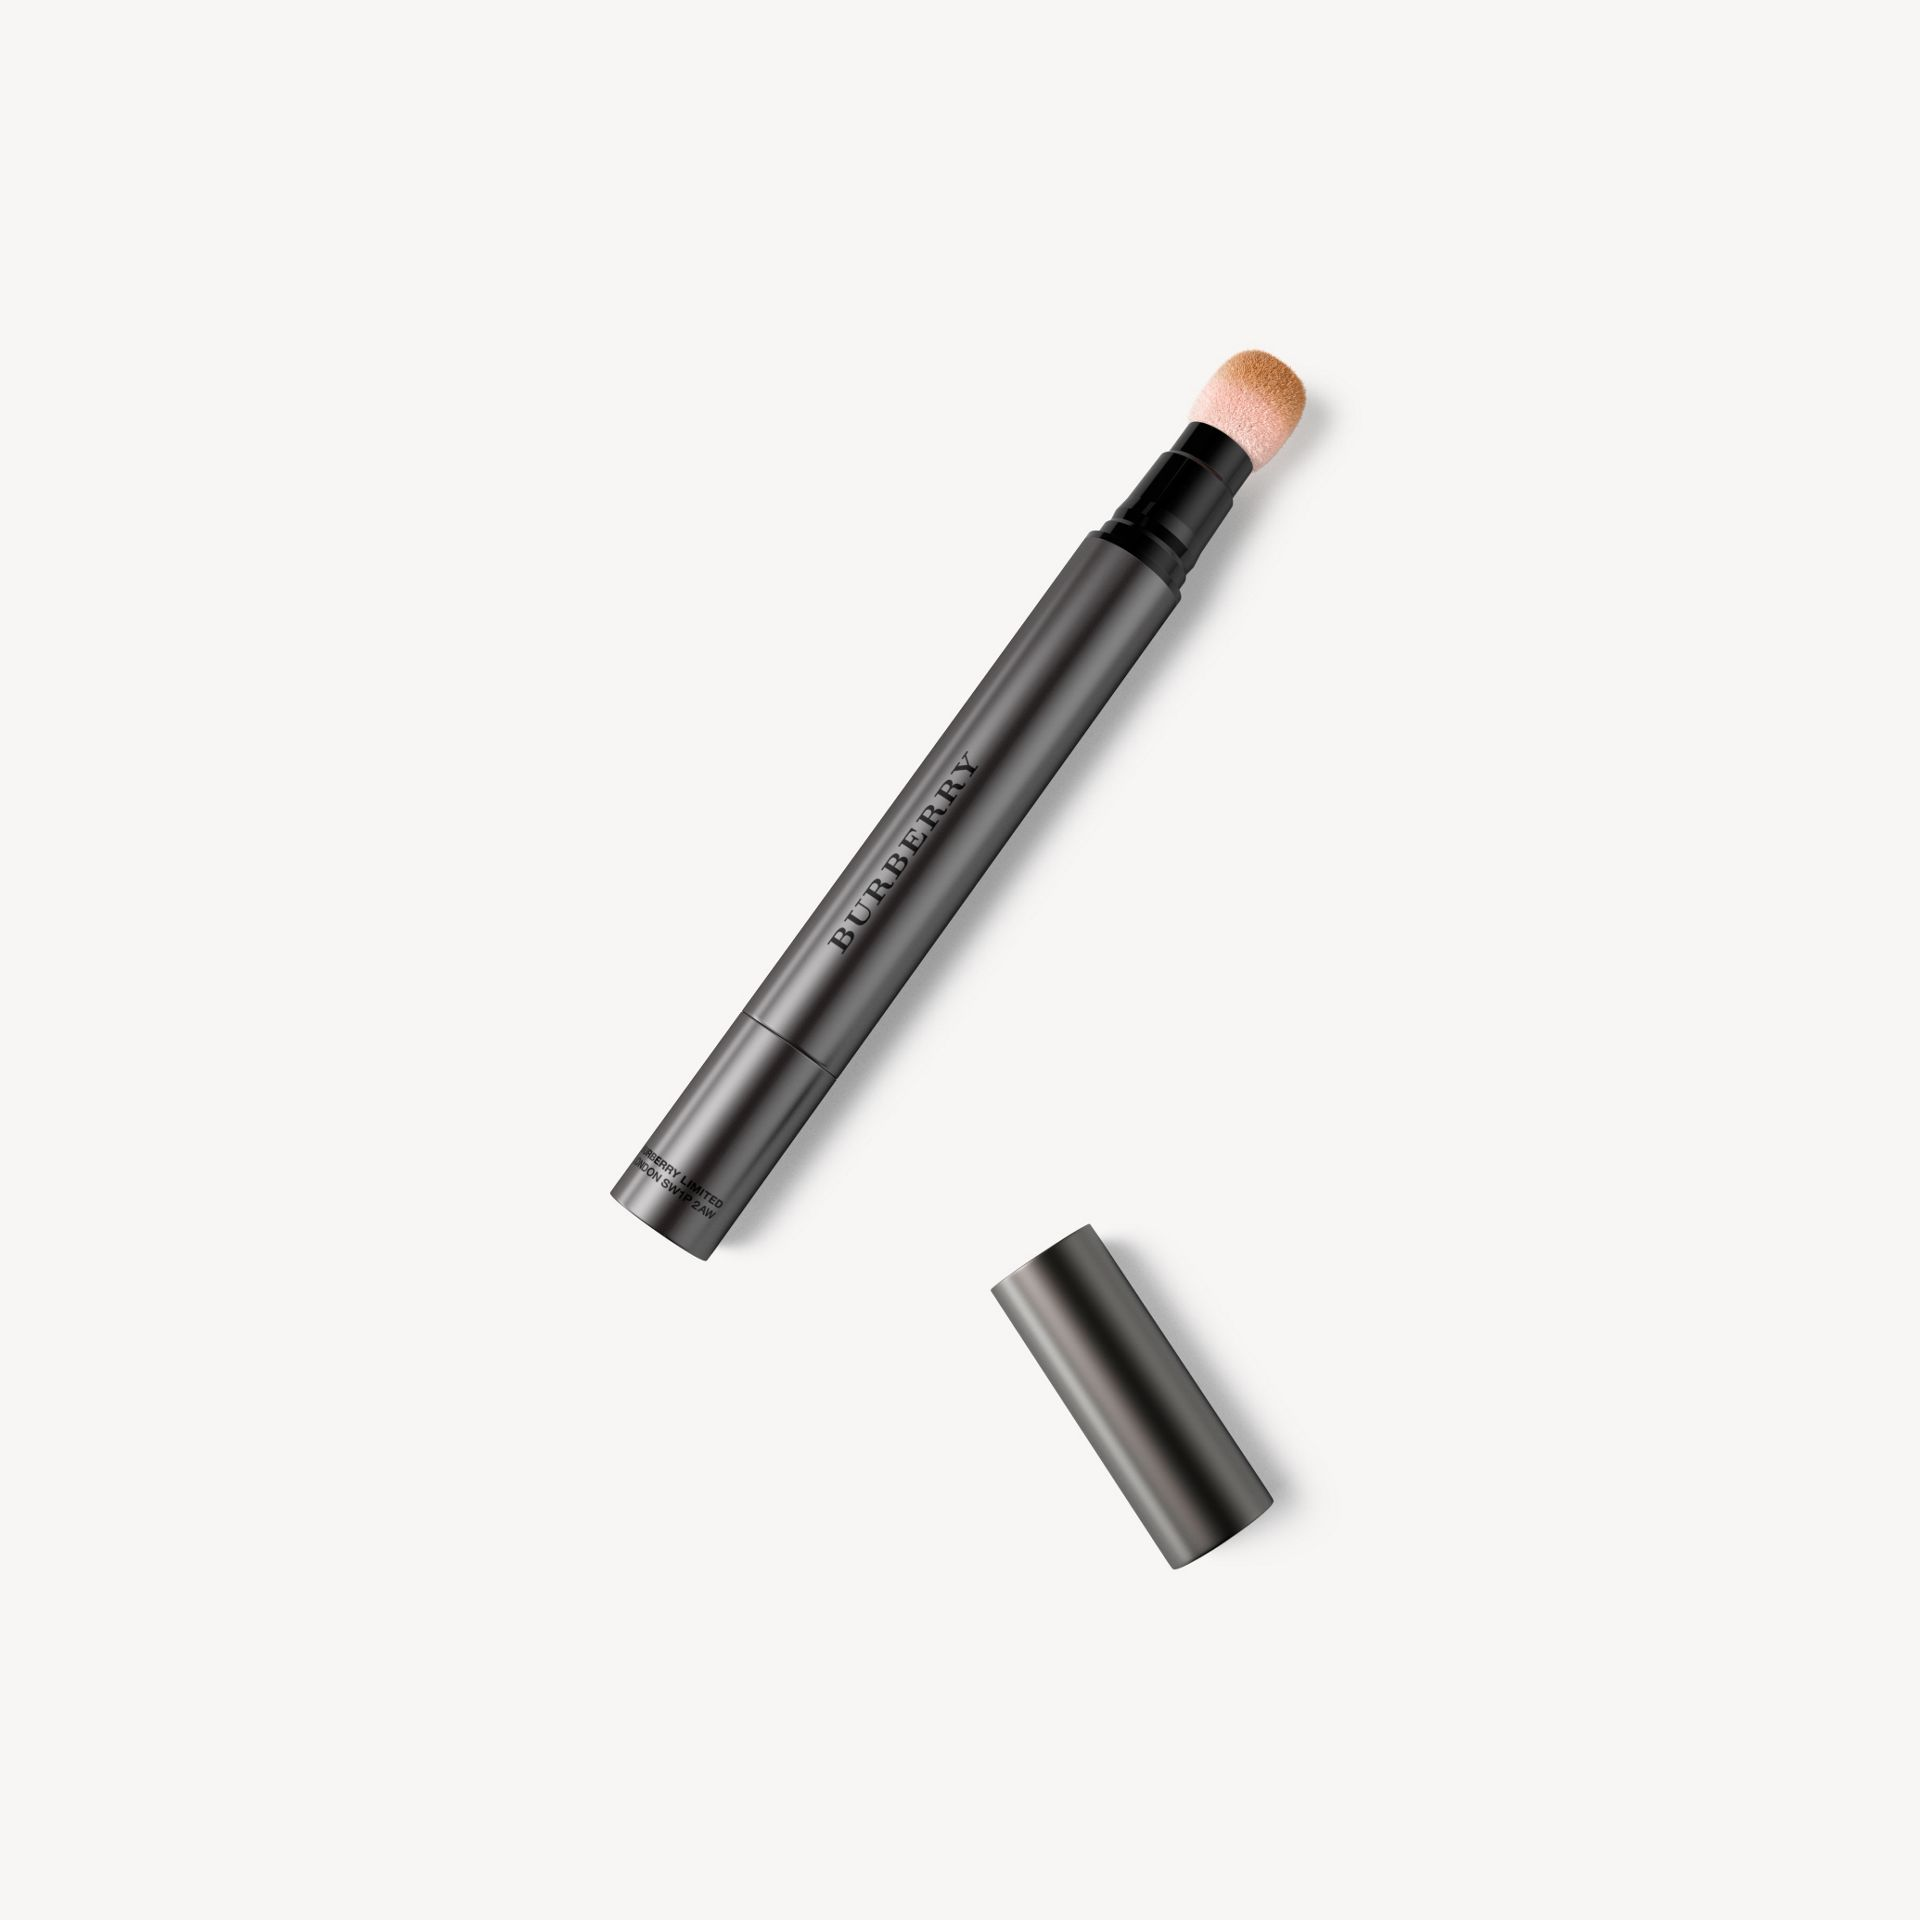 Warm honey 08 Burberry Cashmere Concealer – Warm Honey No.08 - Galerie-Bild 1